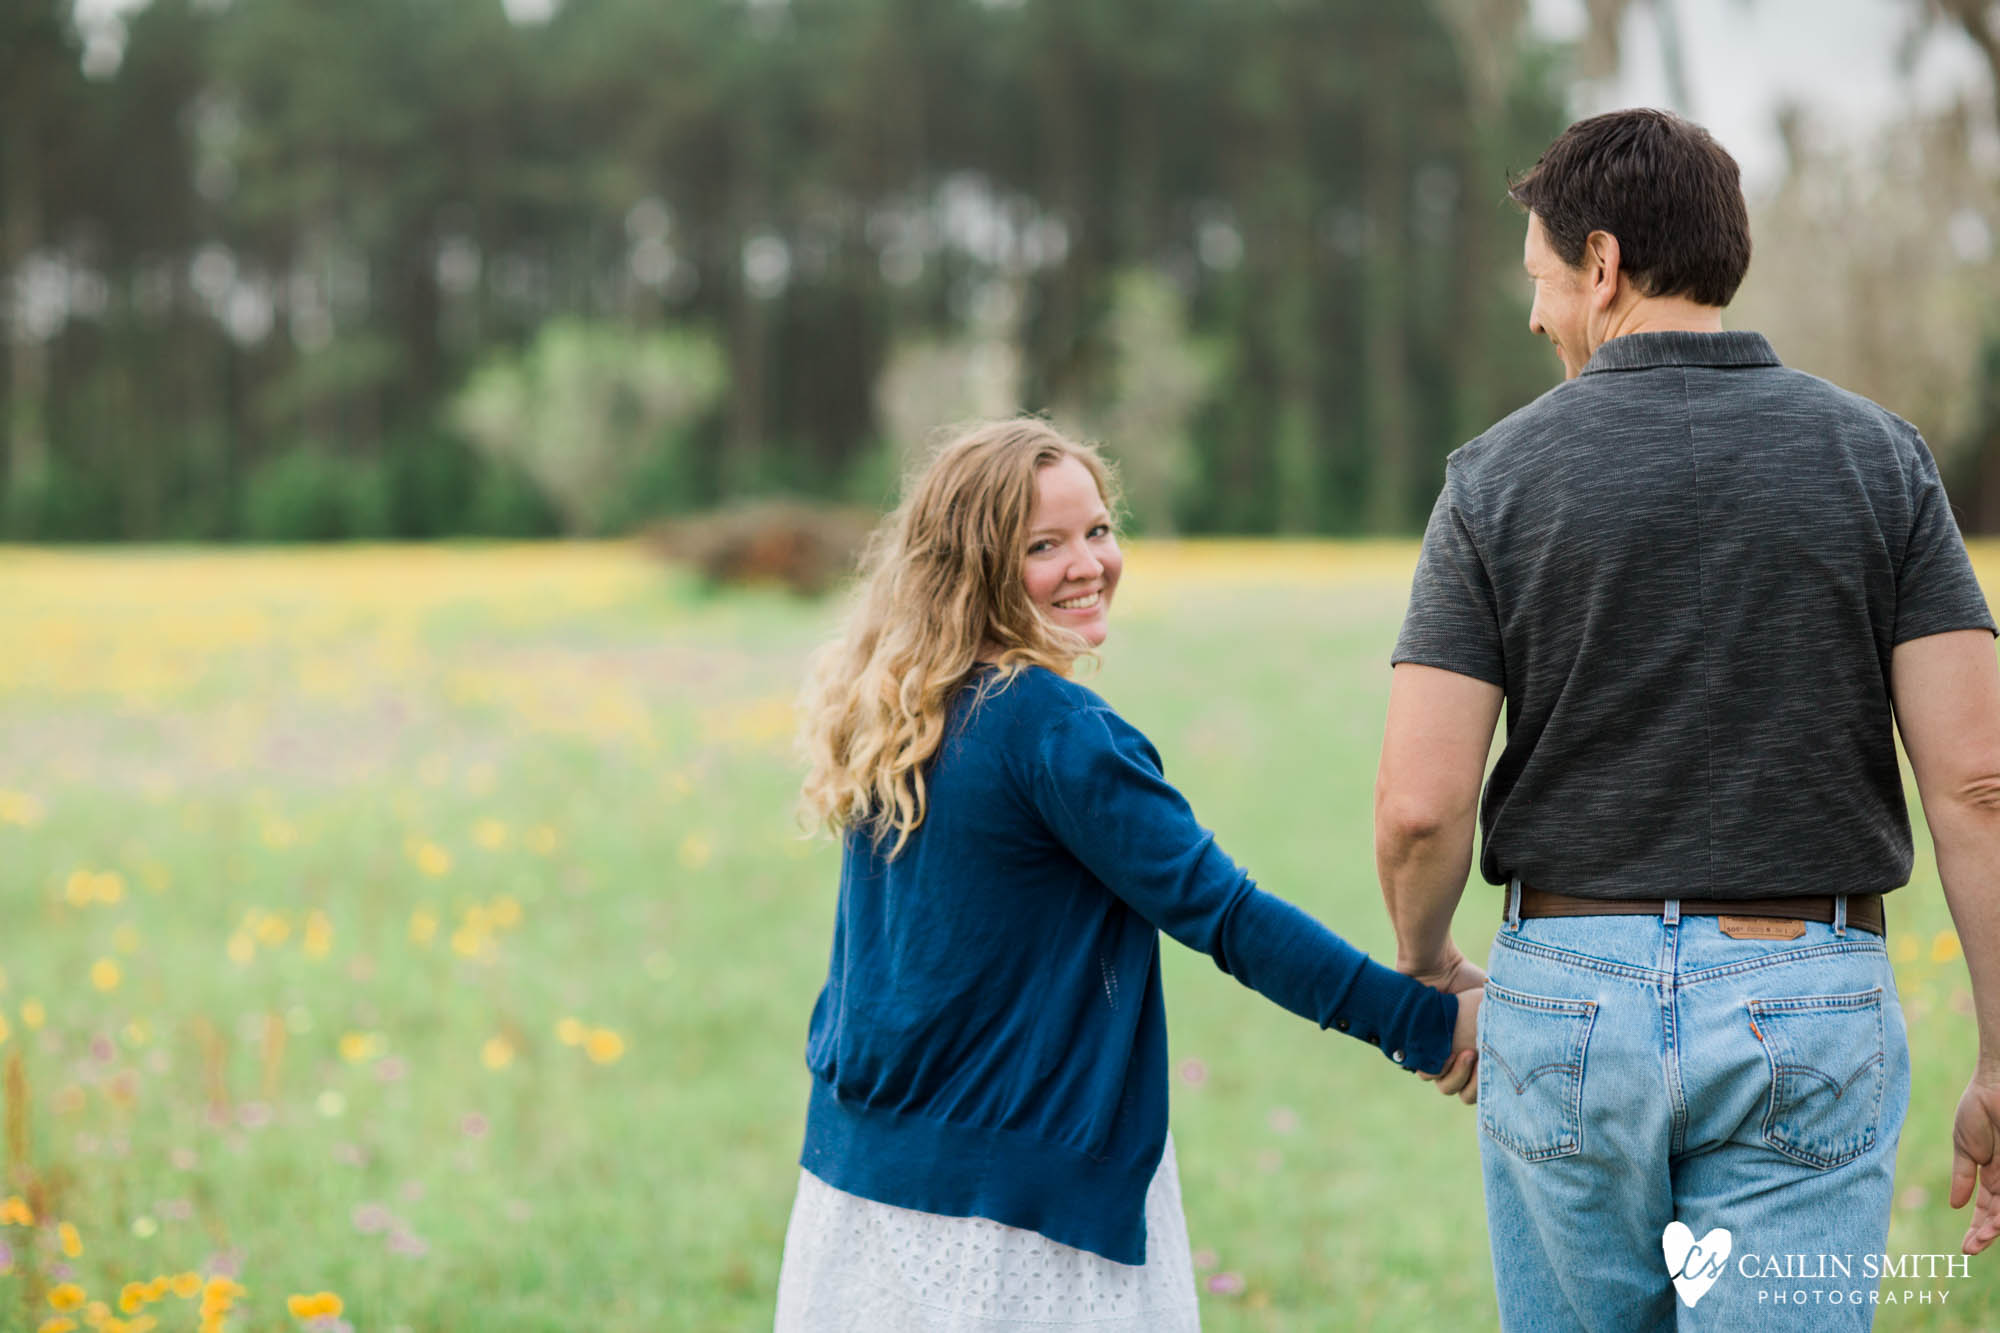 Christie_Nathan_Flower_Field_engagement_Photography_005.jpg